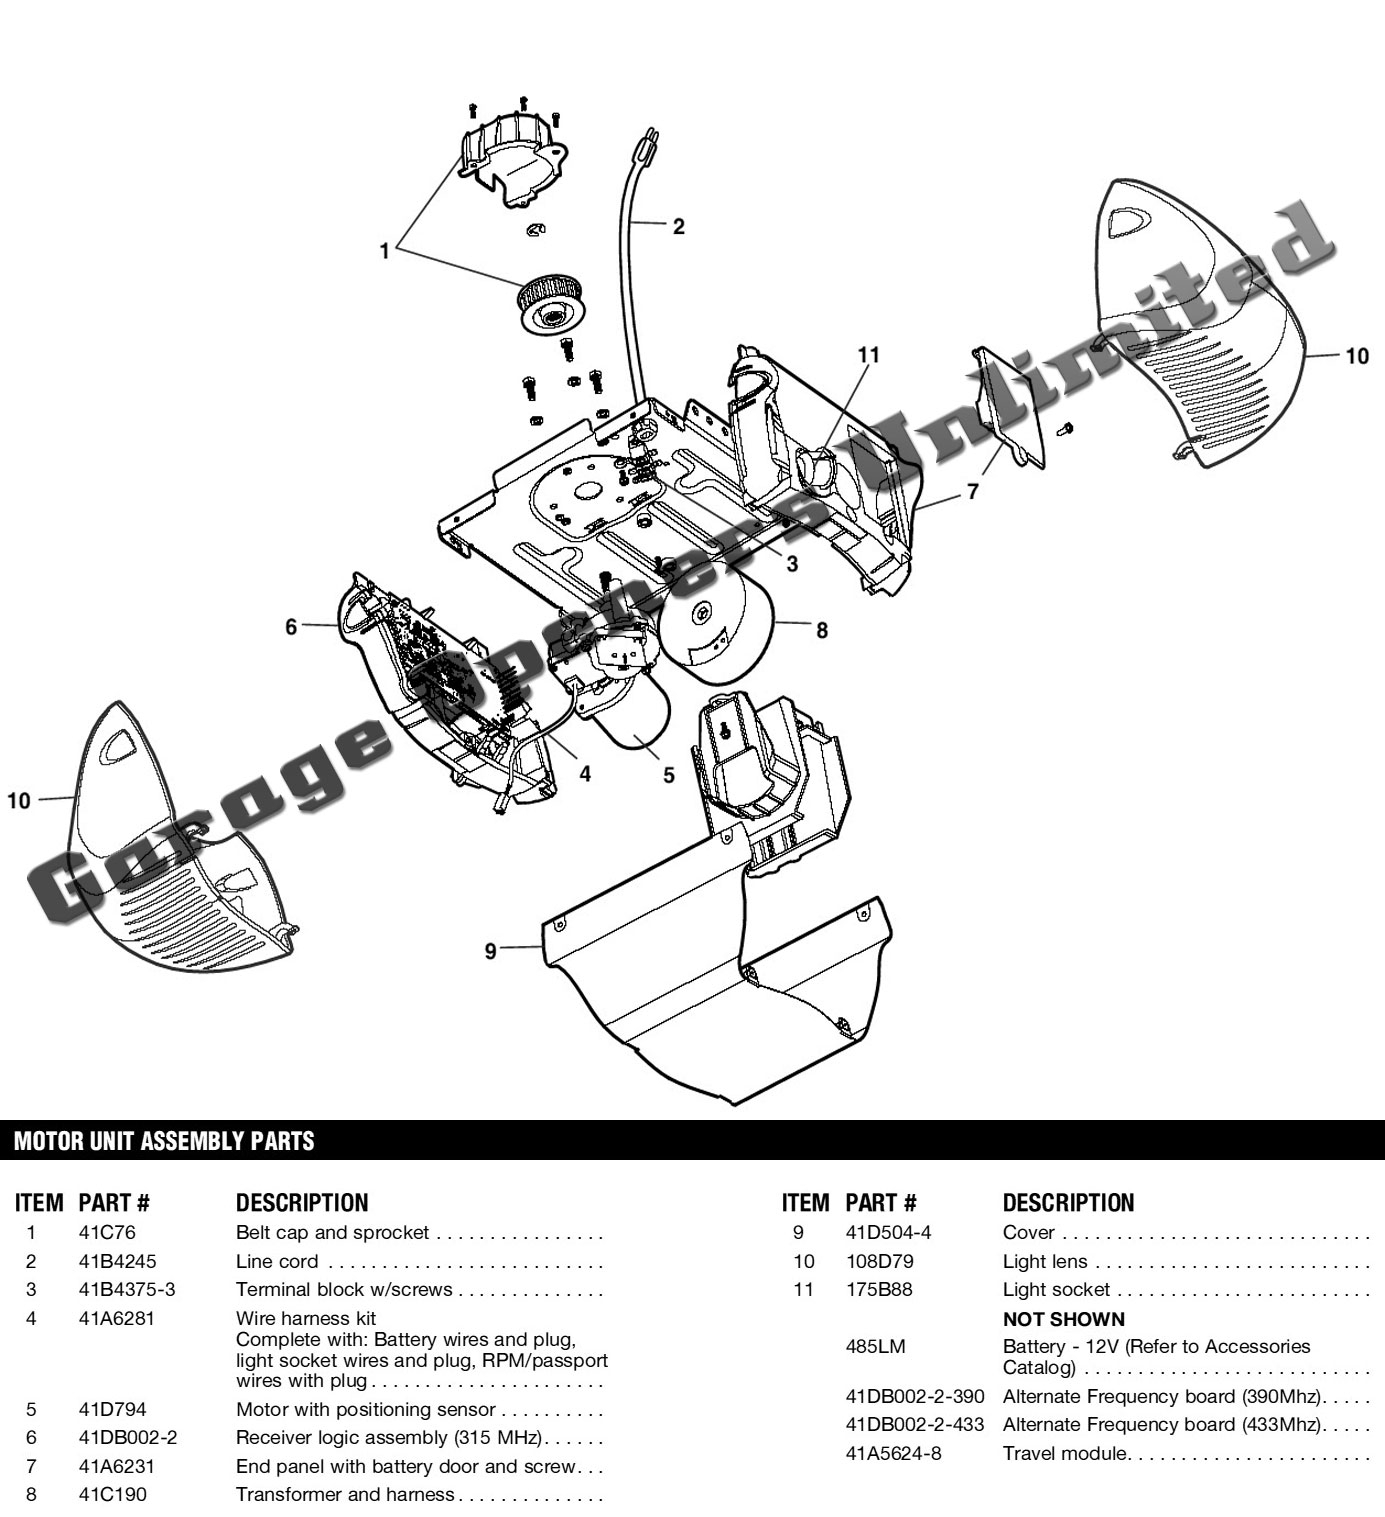 Ibanez Electric Guitar Parts Diagram